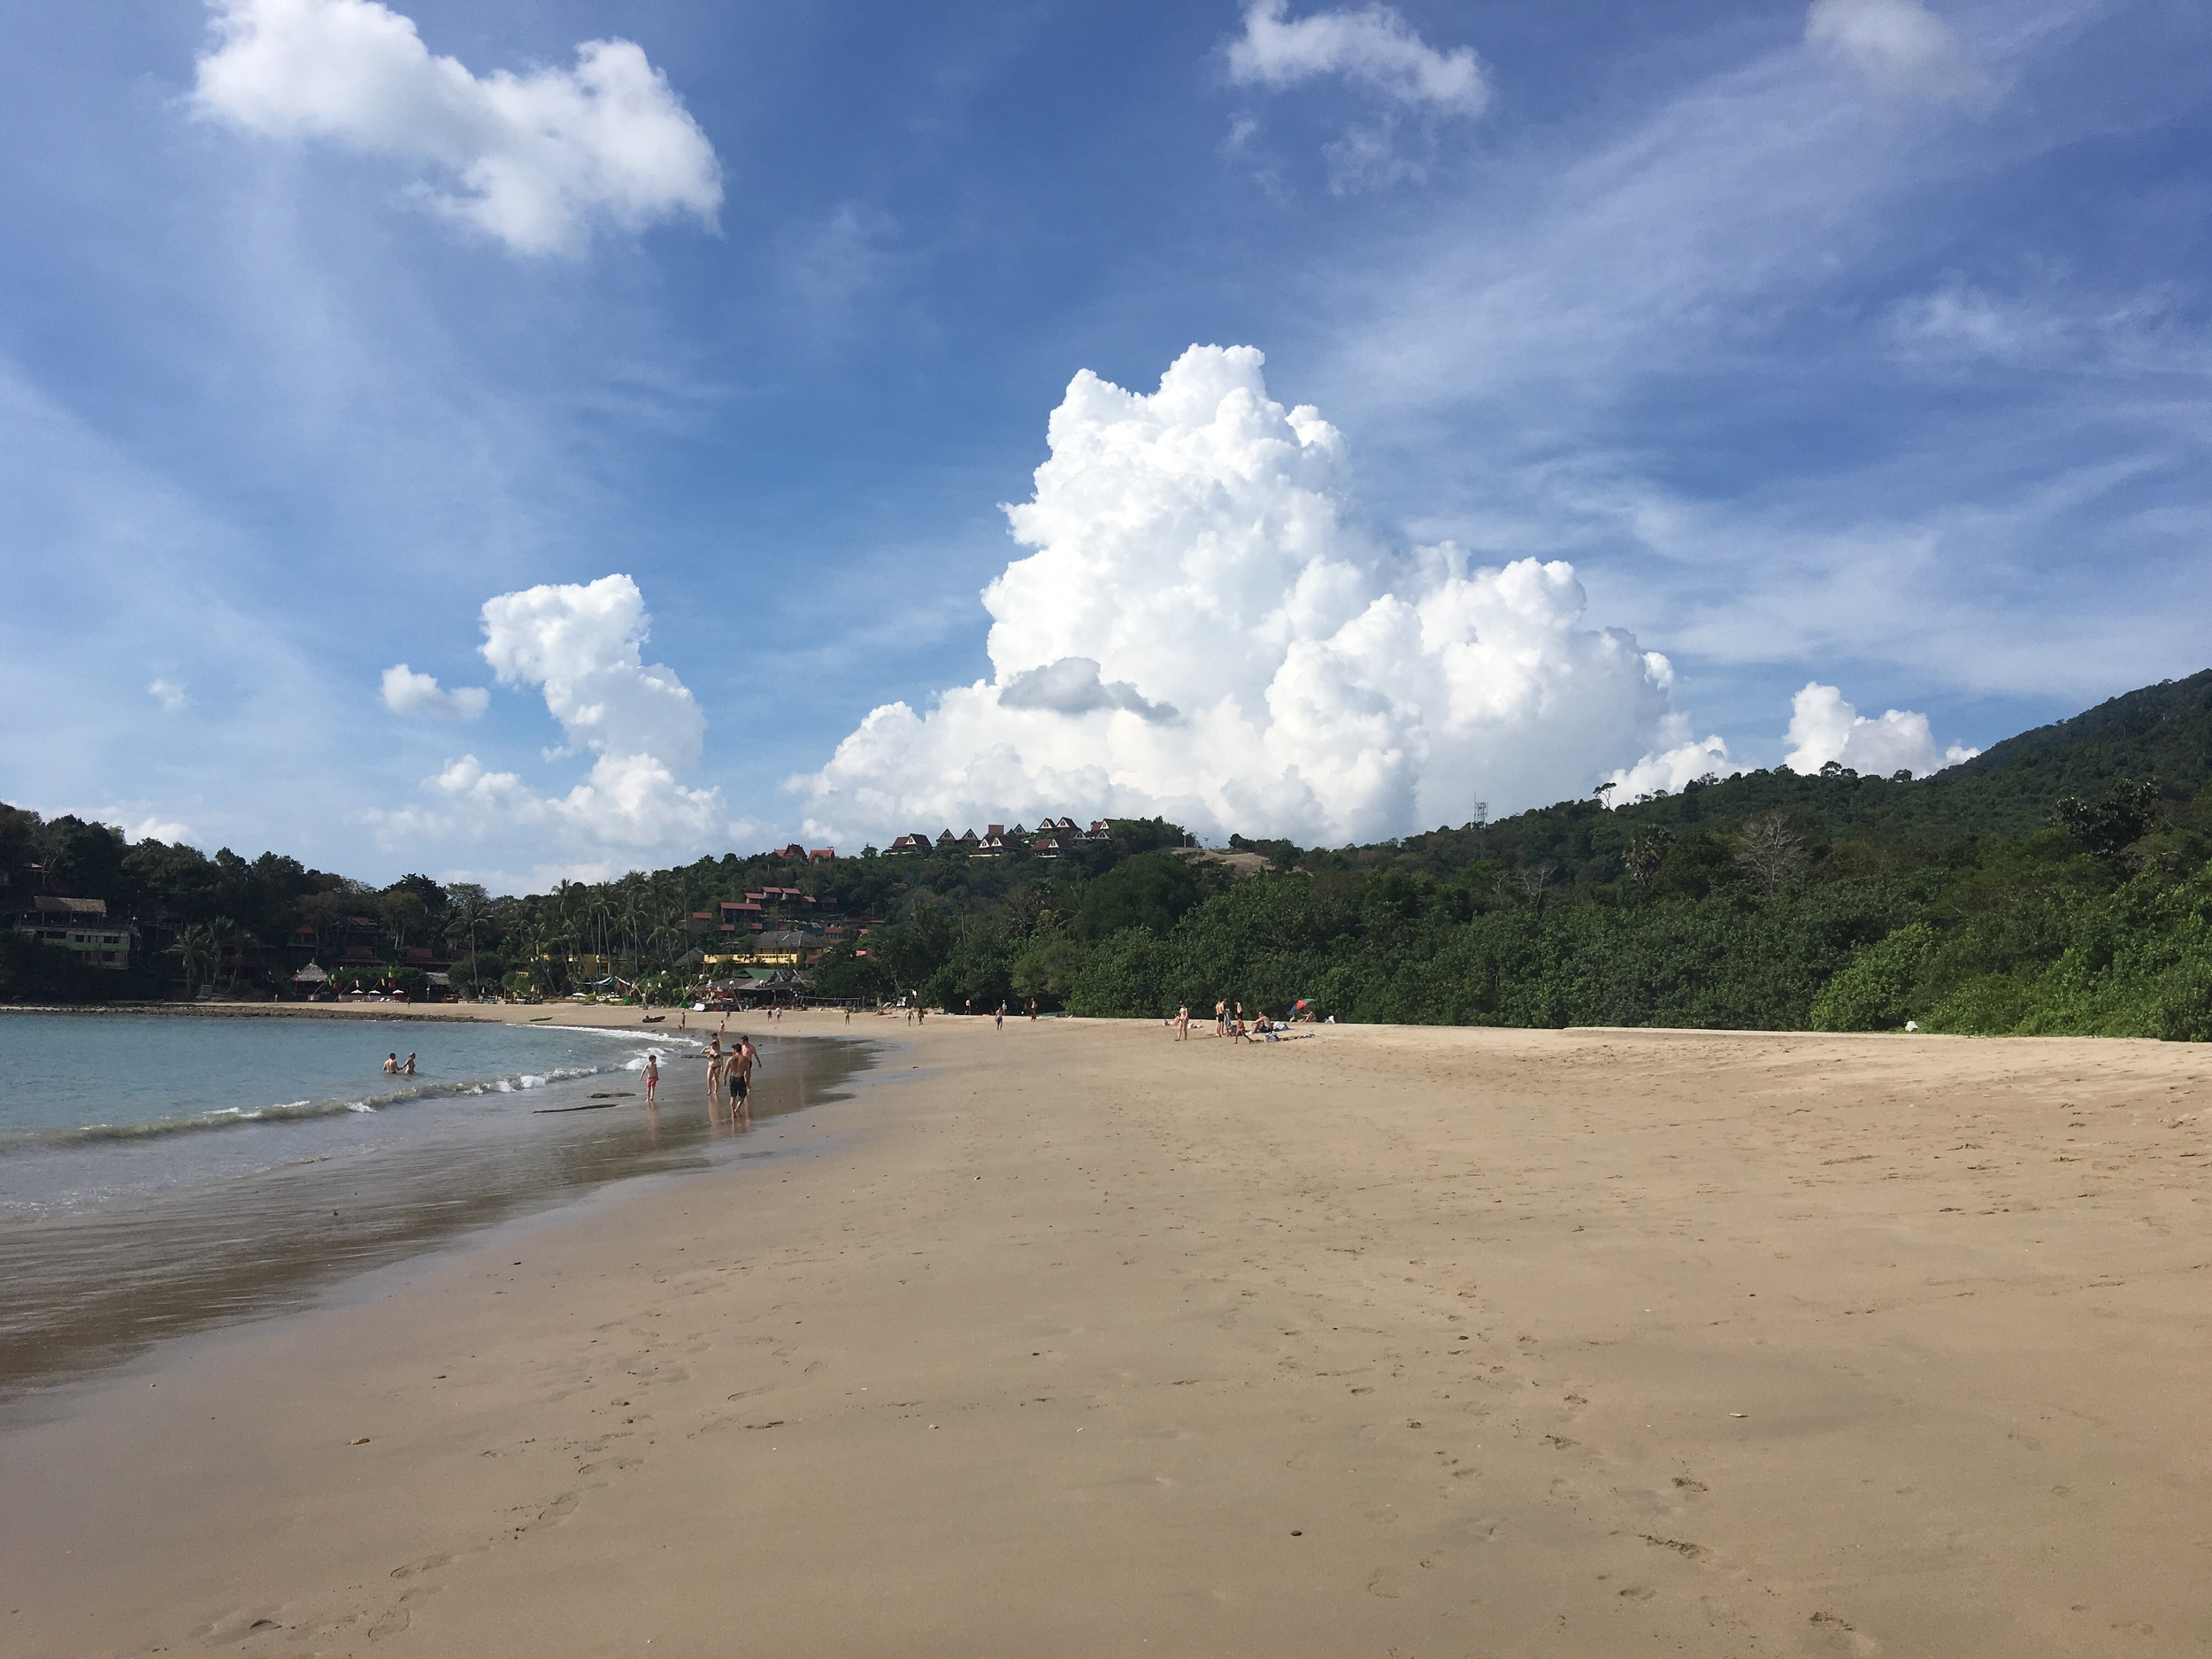 Pimalai Beach with its fluffy clouds and blue serene sky